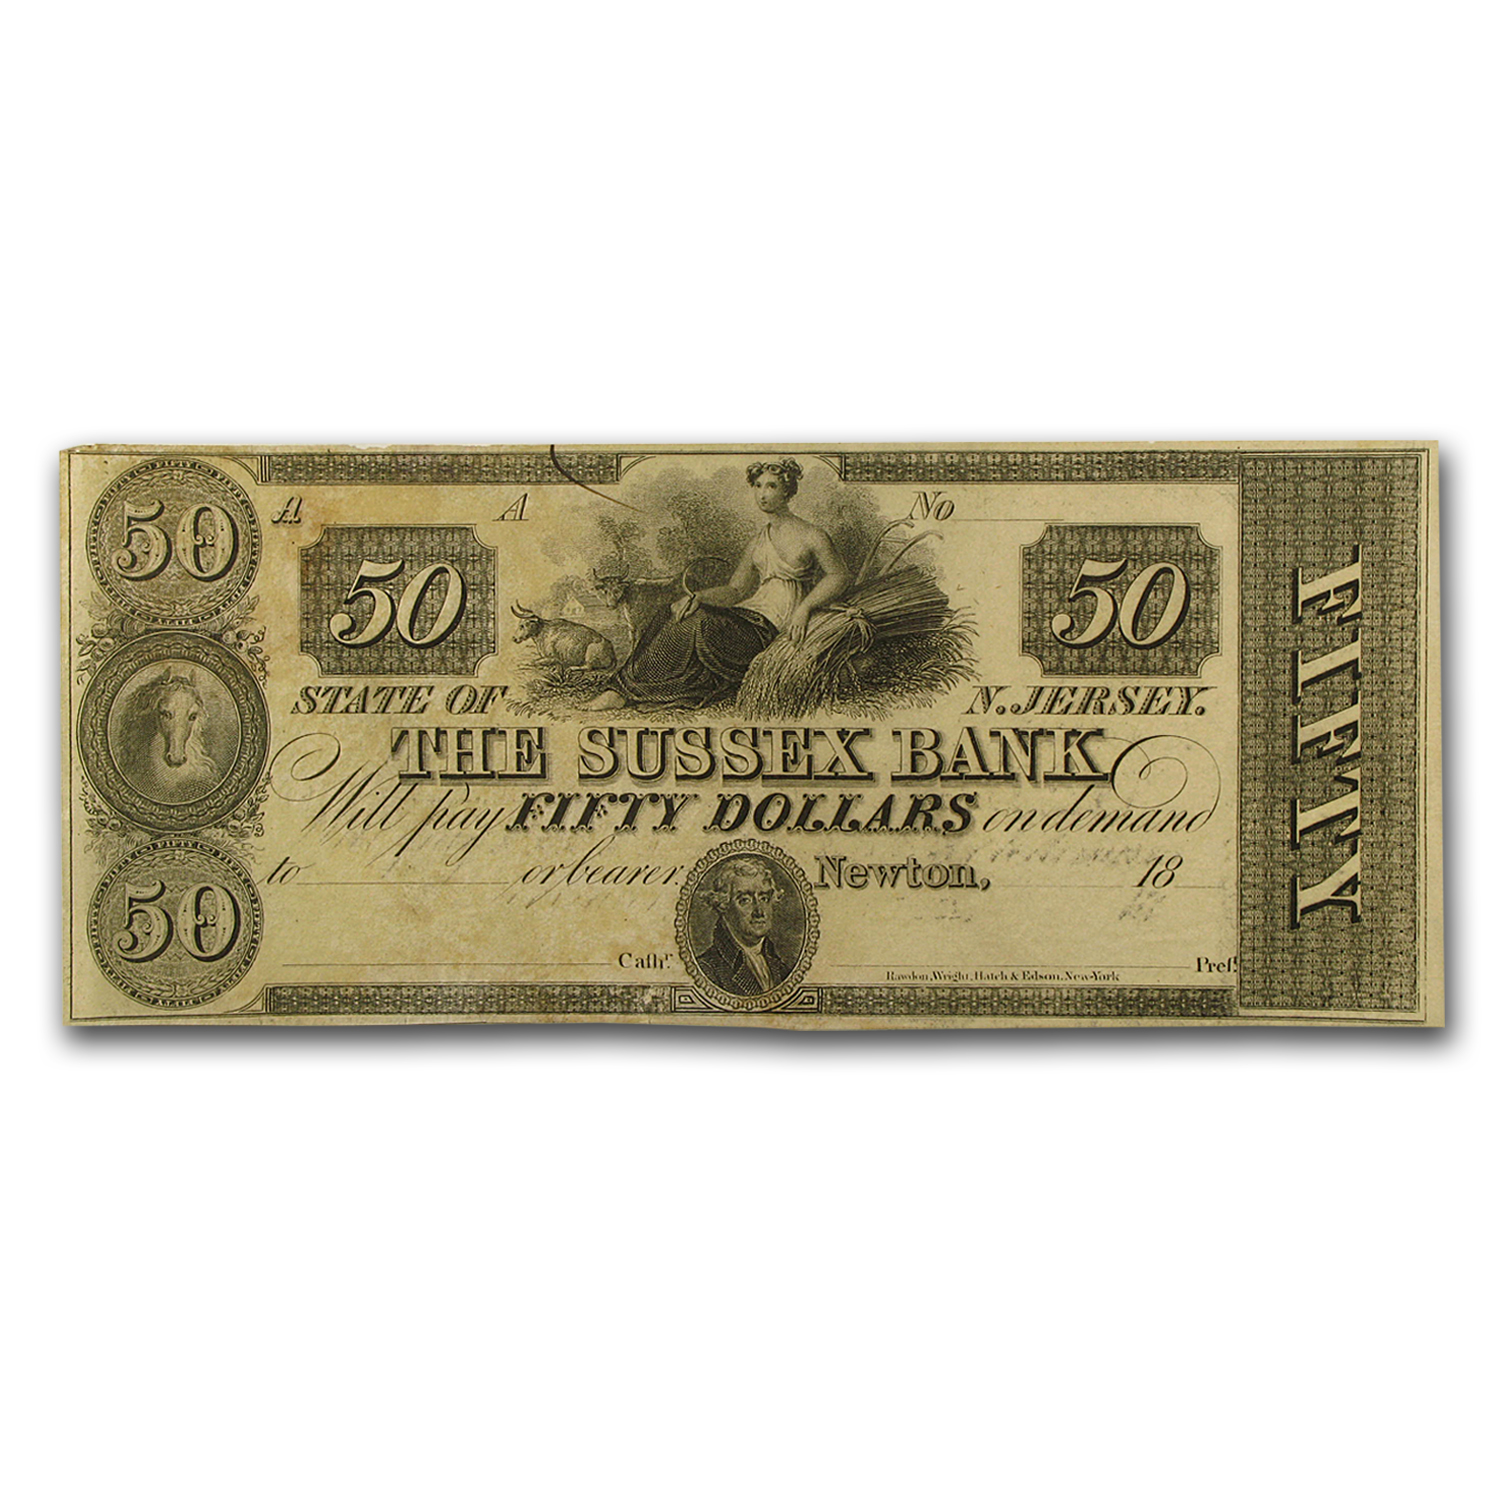 18__ Sussex Bank of Newton, New Jersey $50 AU